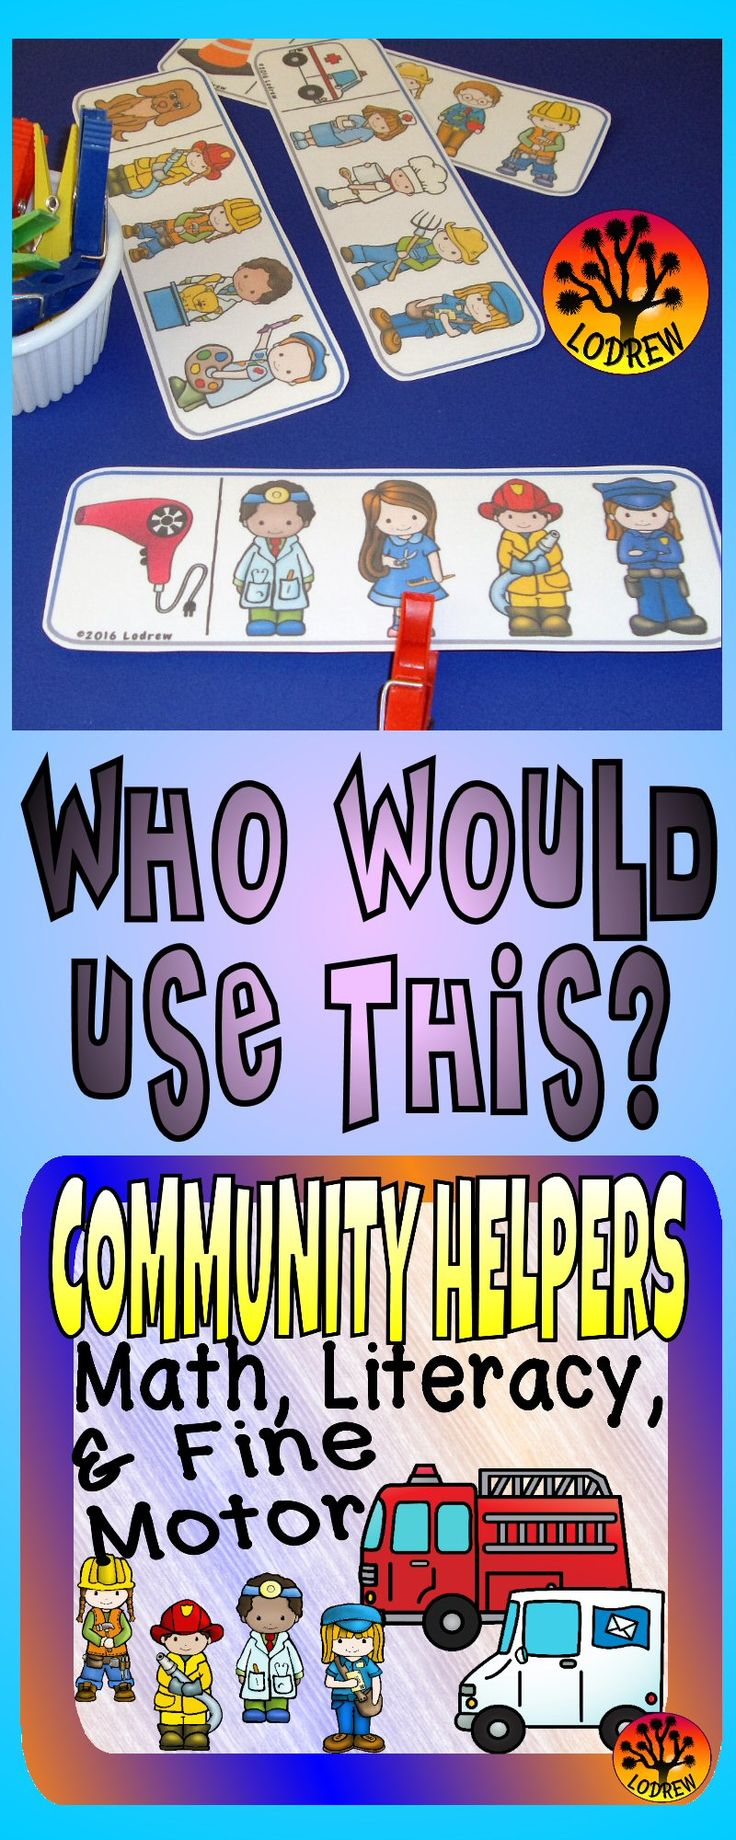 Bilingual dolphin counting card 6 clipart etc - 195 Pages Of Community Helpers Centers Activities Include Letter Matching Question And Answer